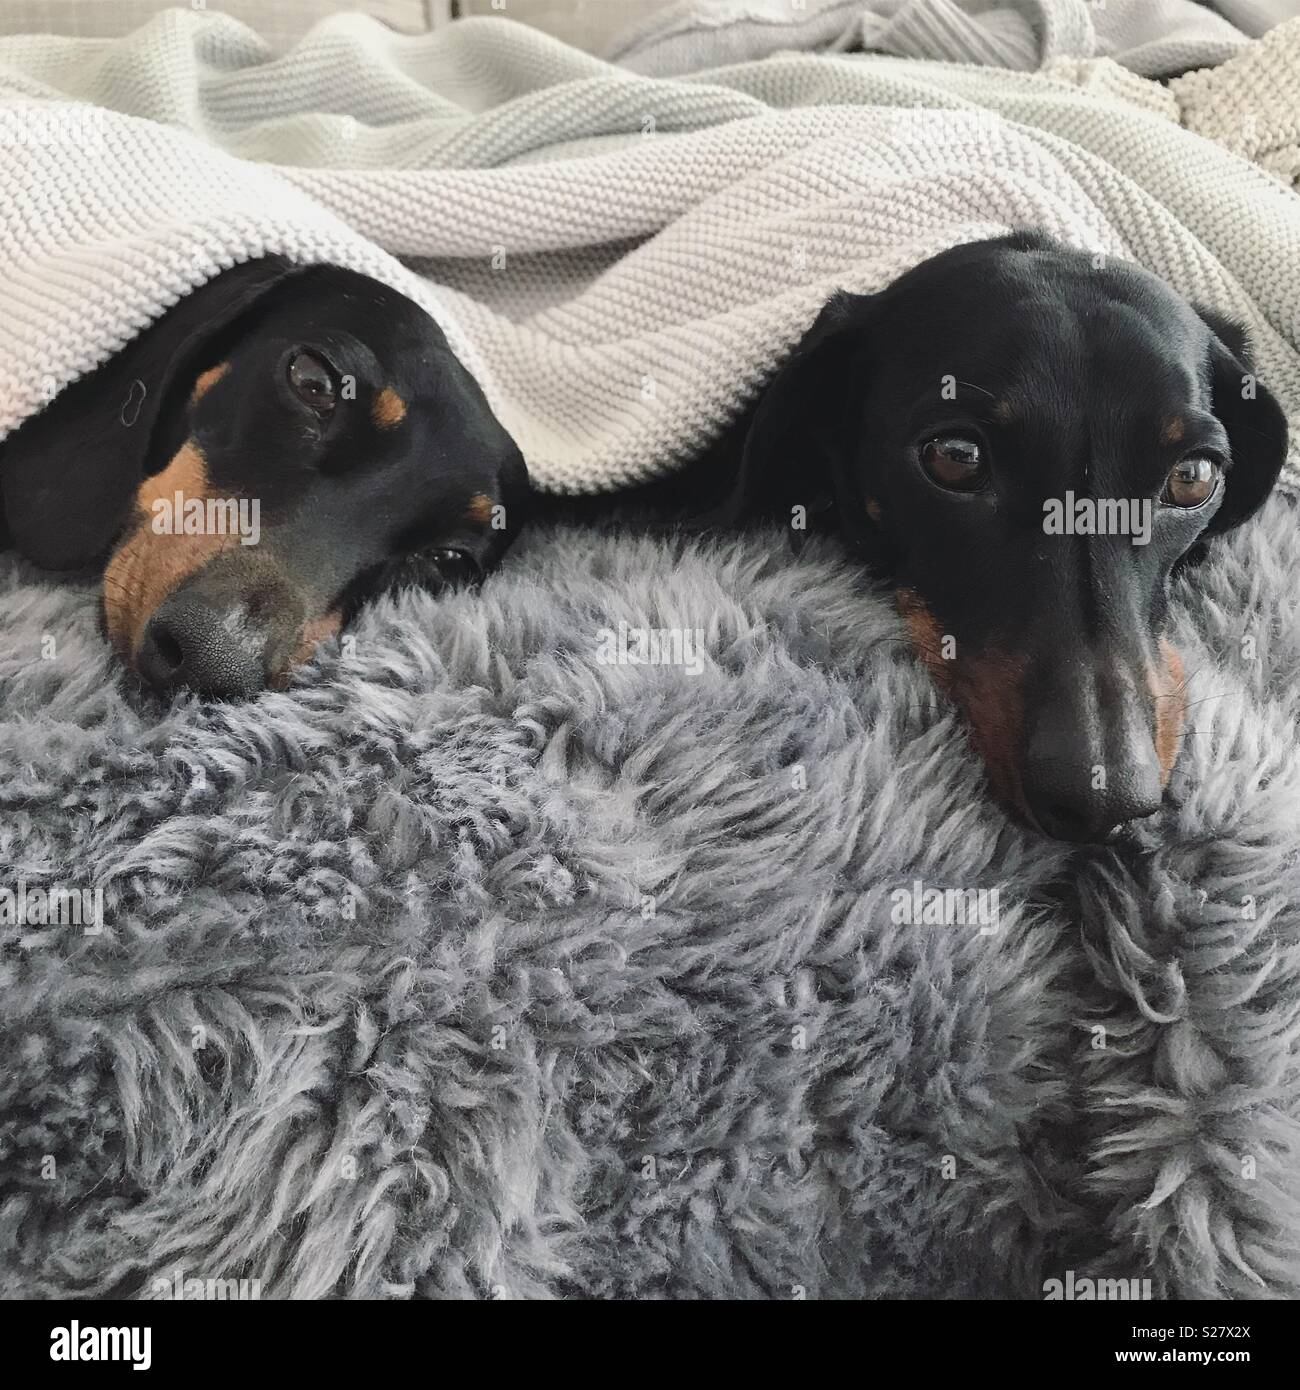 Two Dachshunds in blankets during winter - Stock Image